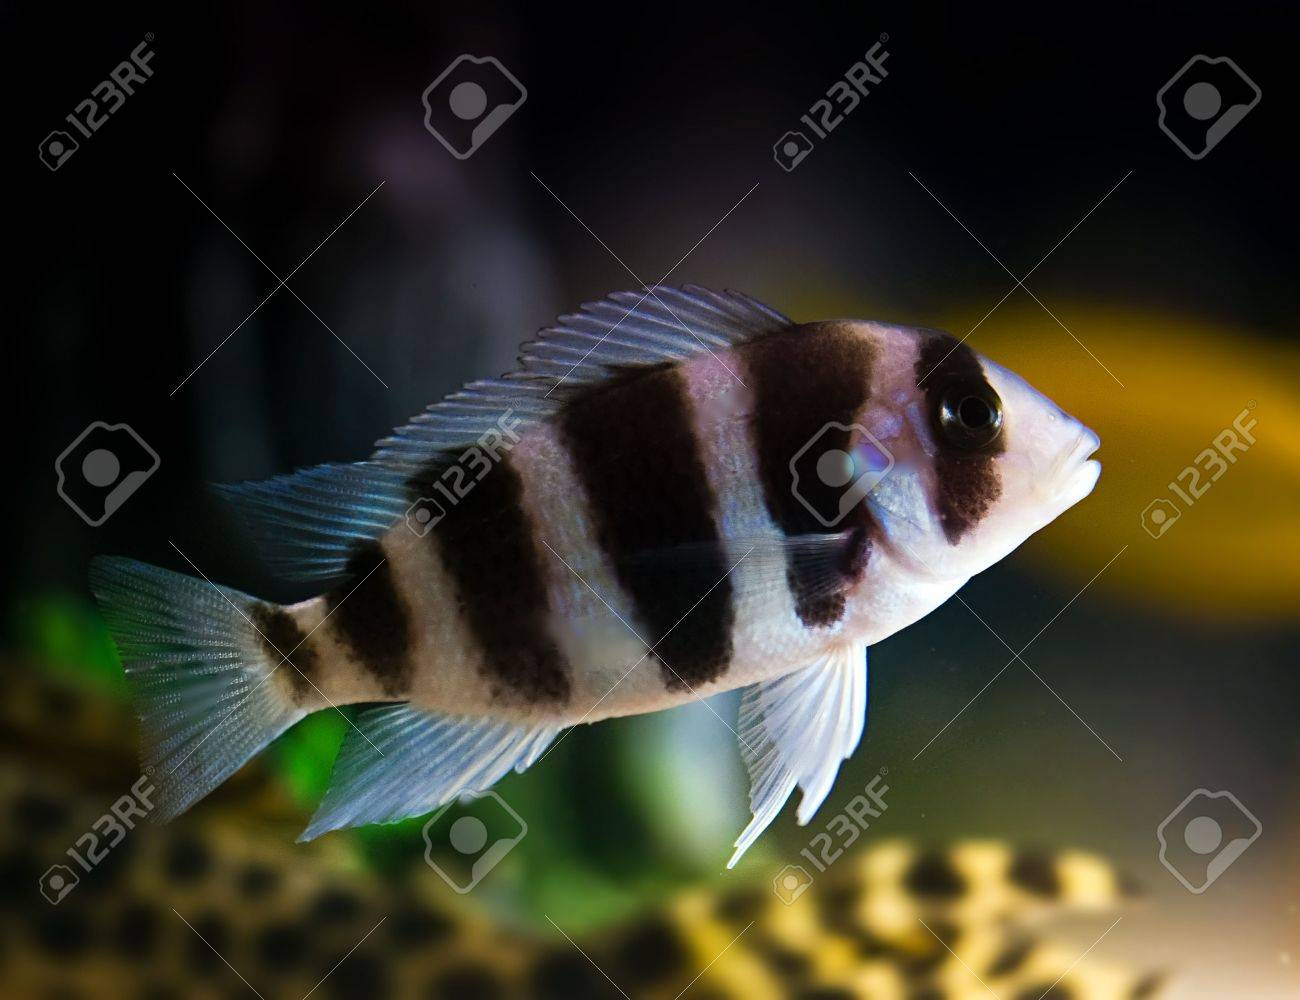 striped cichlid fish of the frontosa spieces Stock Photo - 3561948